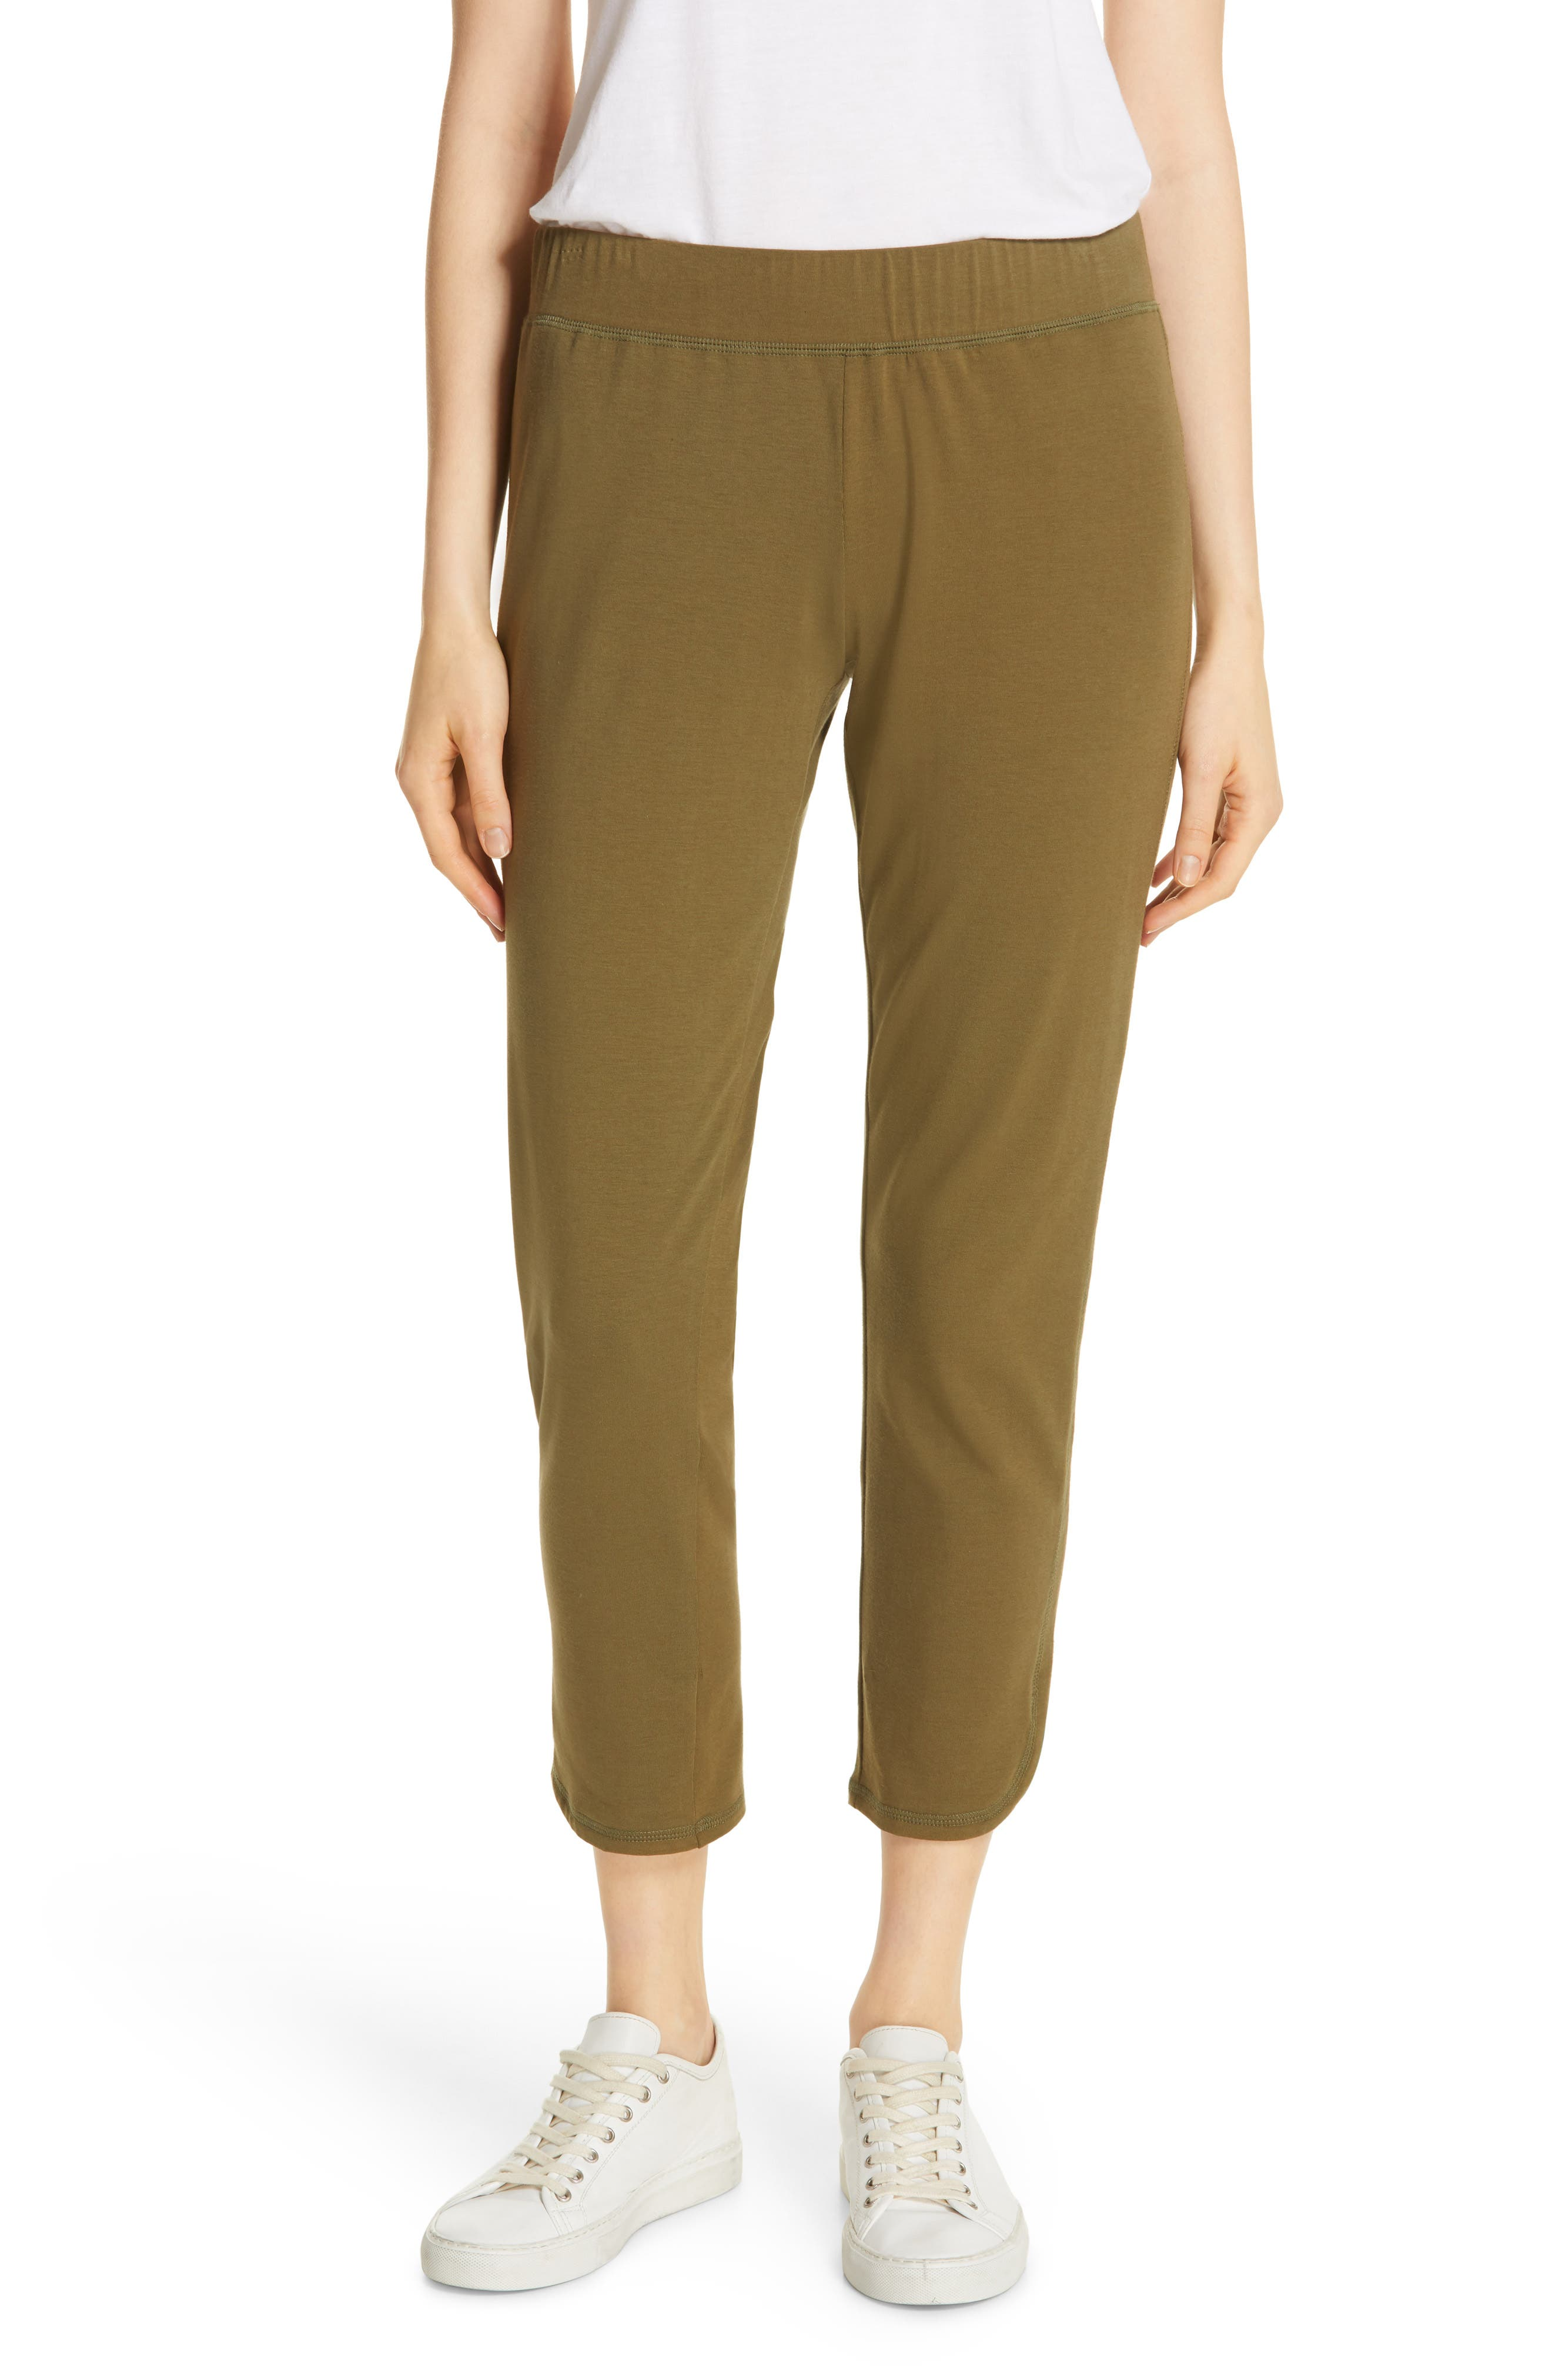 EILEEN FISHER, Slim Crop Pants, Main thumbnail 1, color, OLIVE